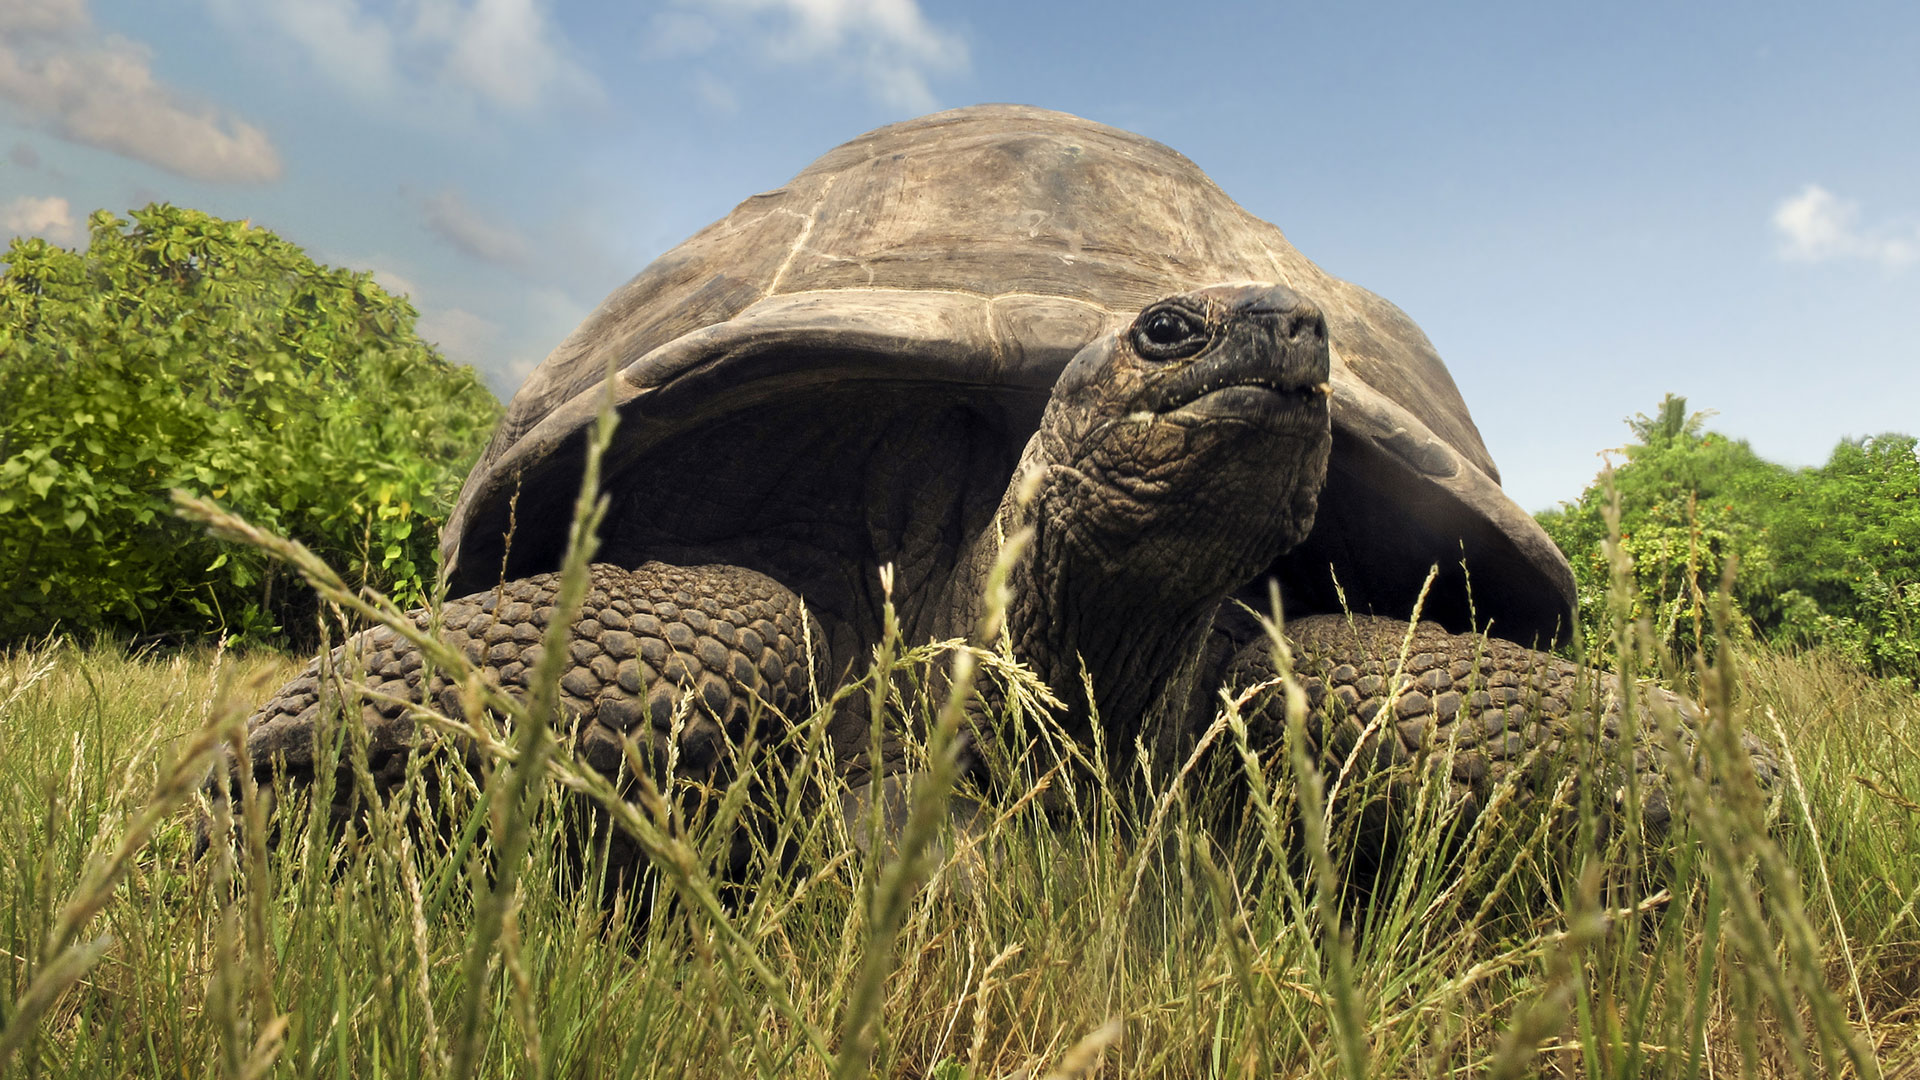 Aldabra tortoise, Indian Ocean